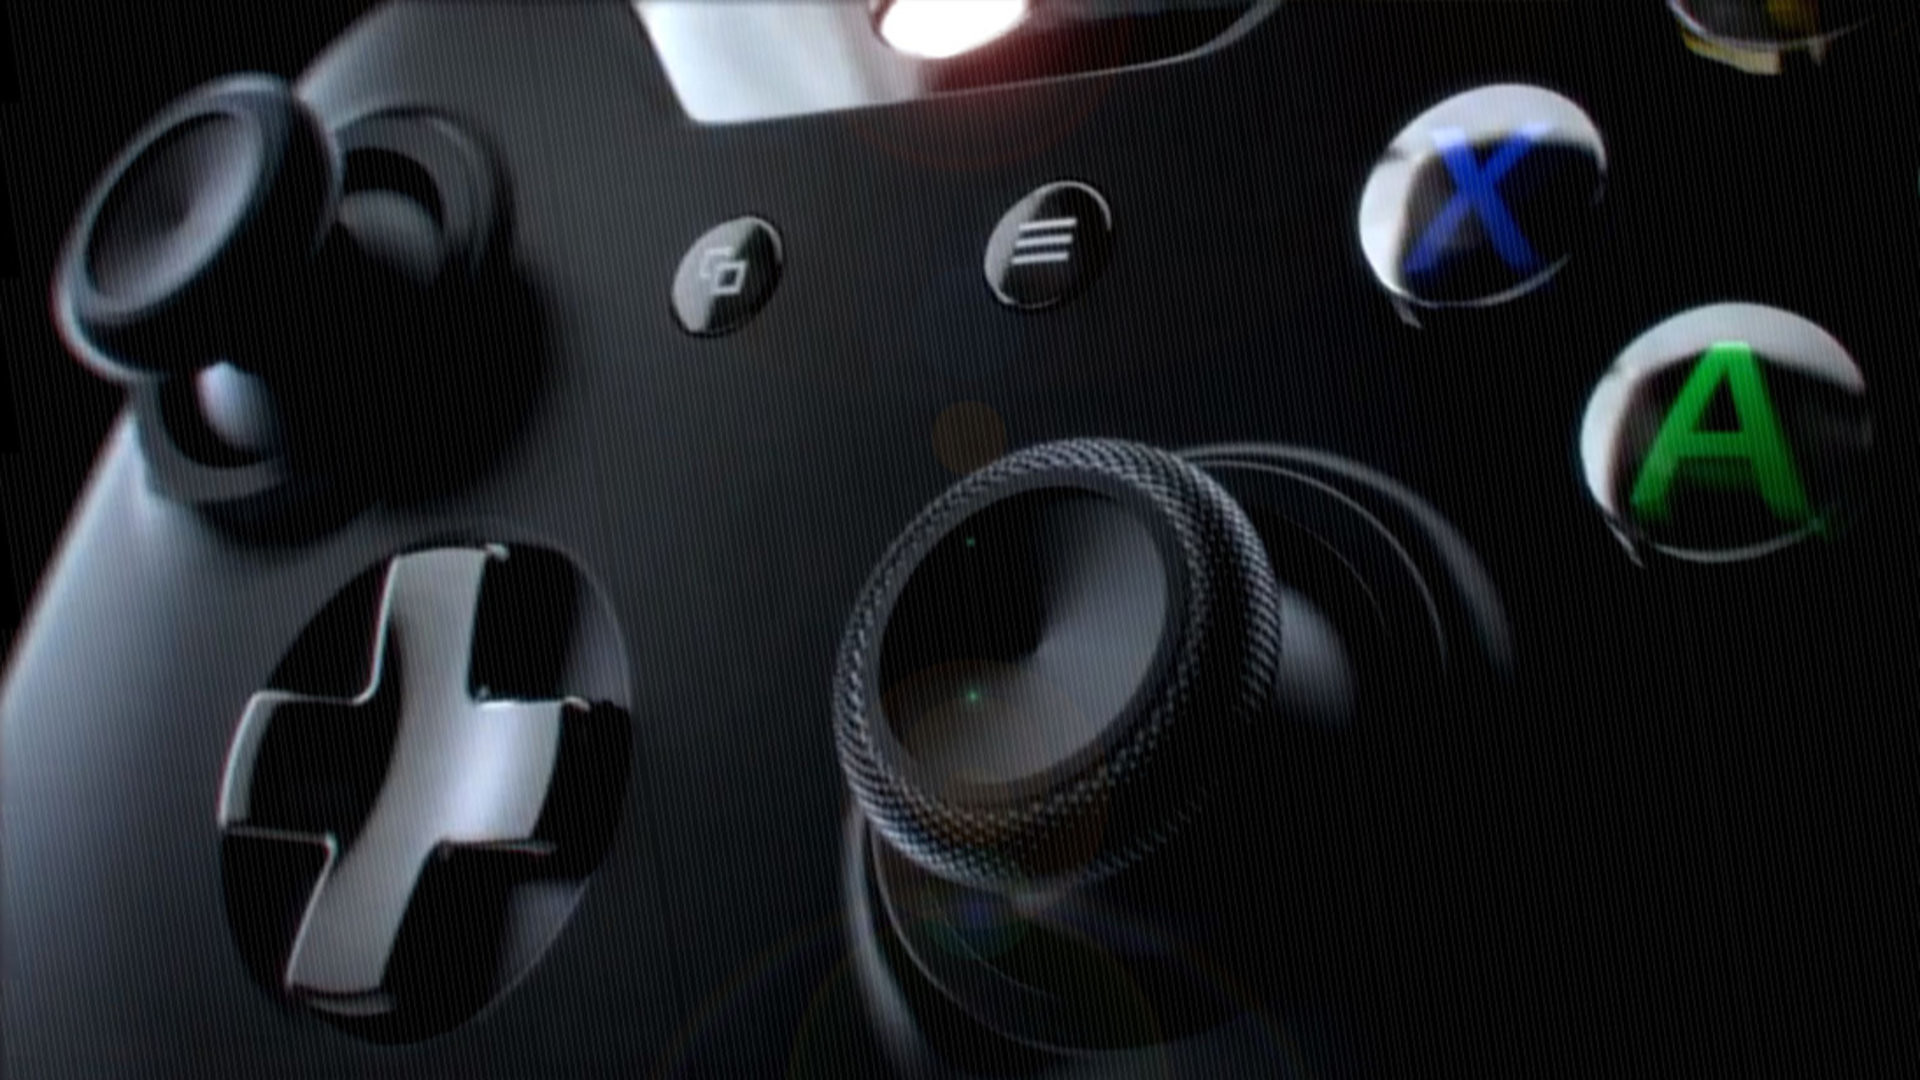 Gaming Controllers Wallpaper Wide